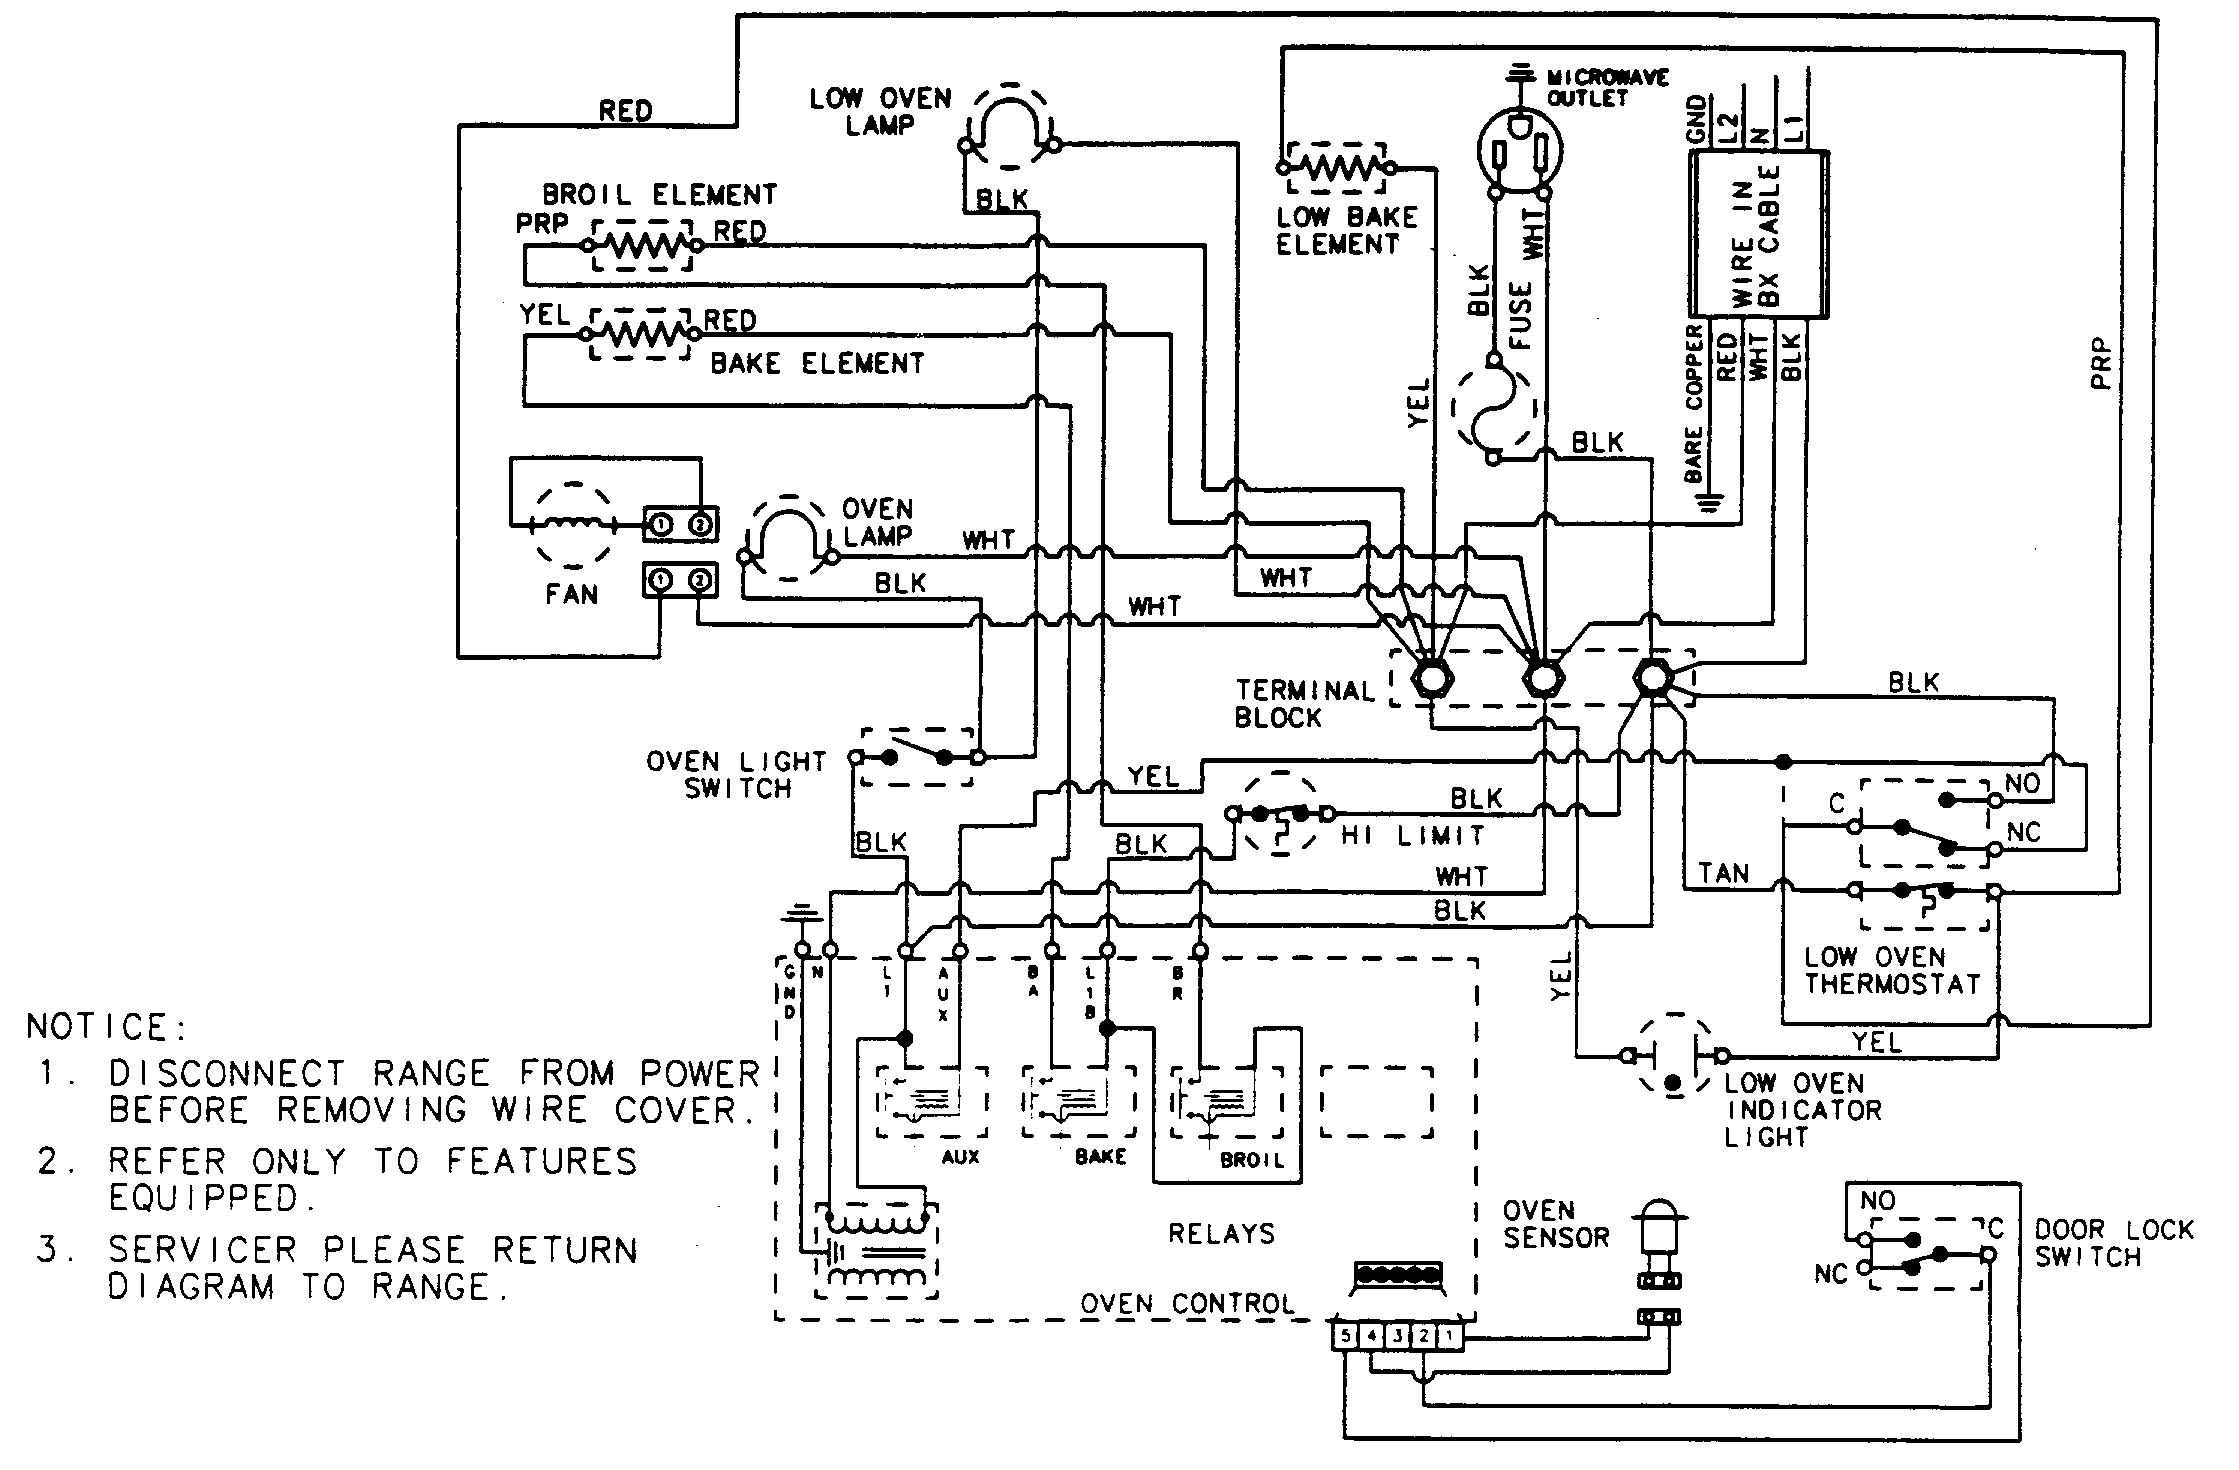 Wiring Diagram Electric Cooker : Magic chef vuv electric oven timer stove clocks and